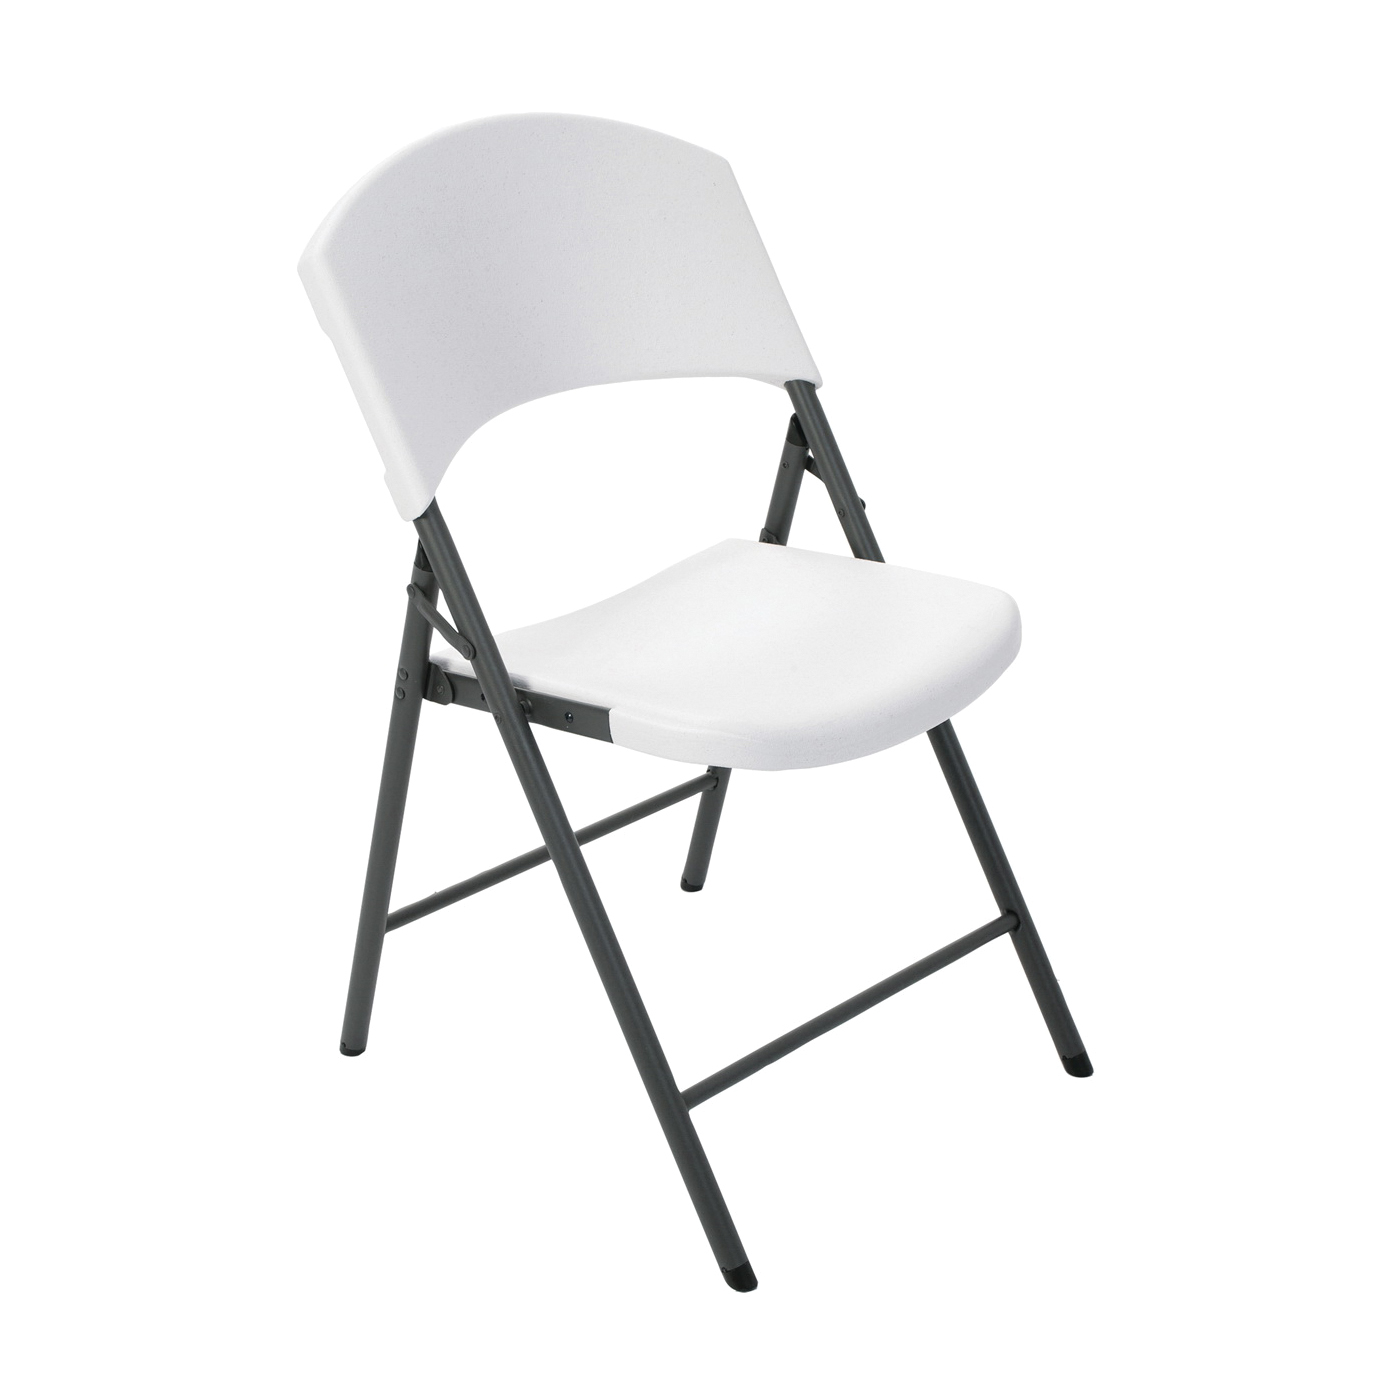 Picture of Lifetime Products 2810 Folding Chair, Steel Frame, Polyethylene Tabletop, Gray/White